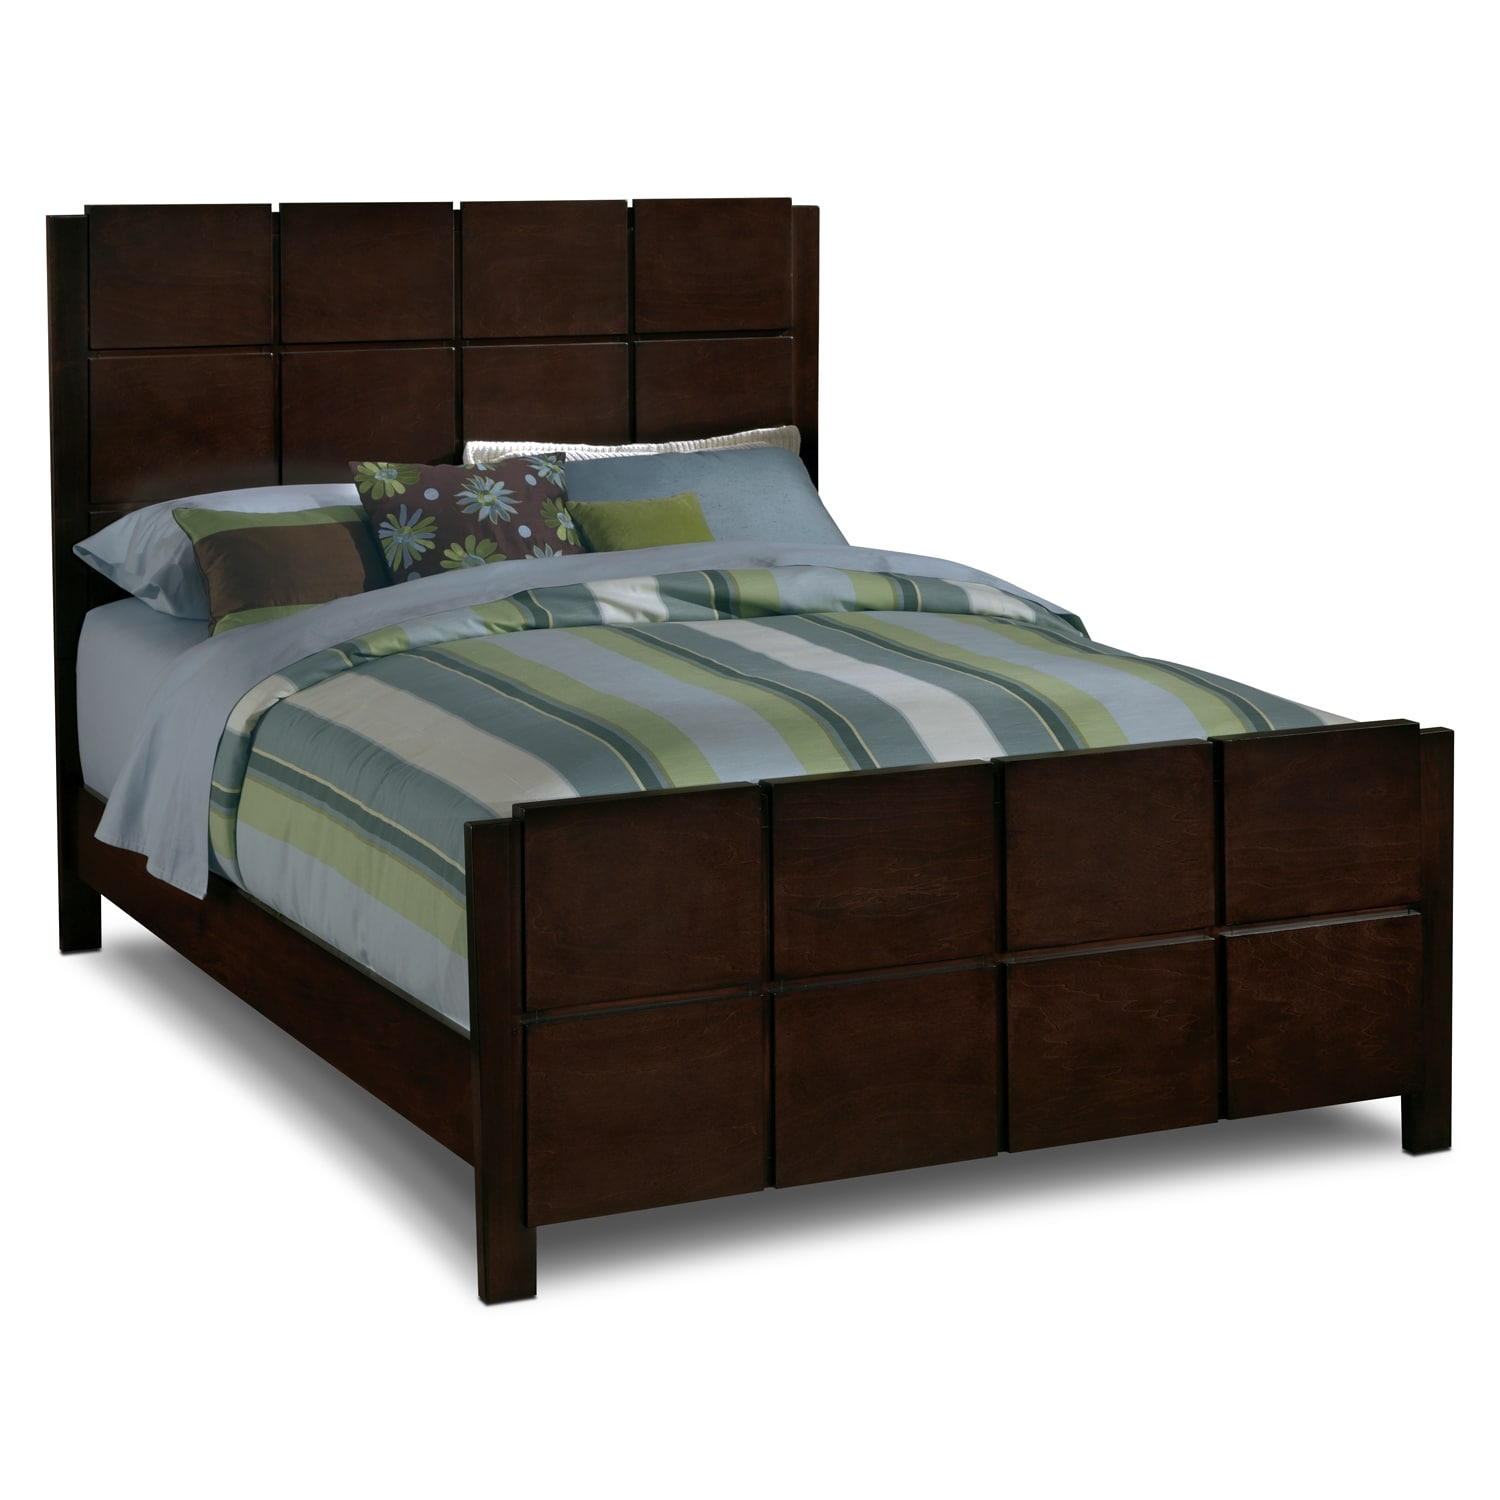 Mosaic queen bed value city furniture for Bedroom furniture beds